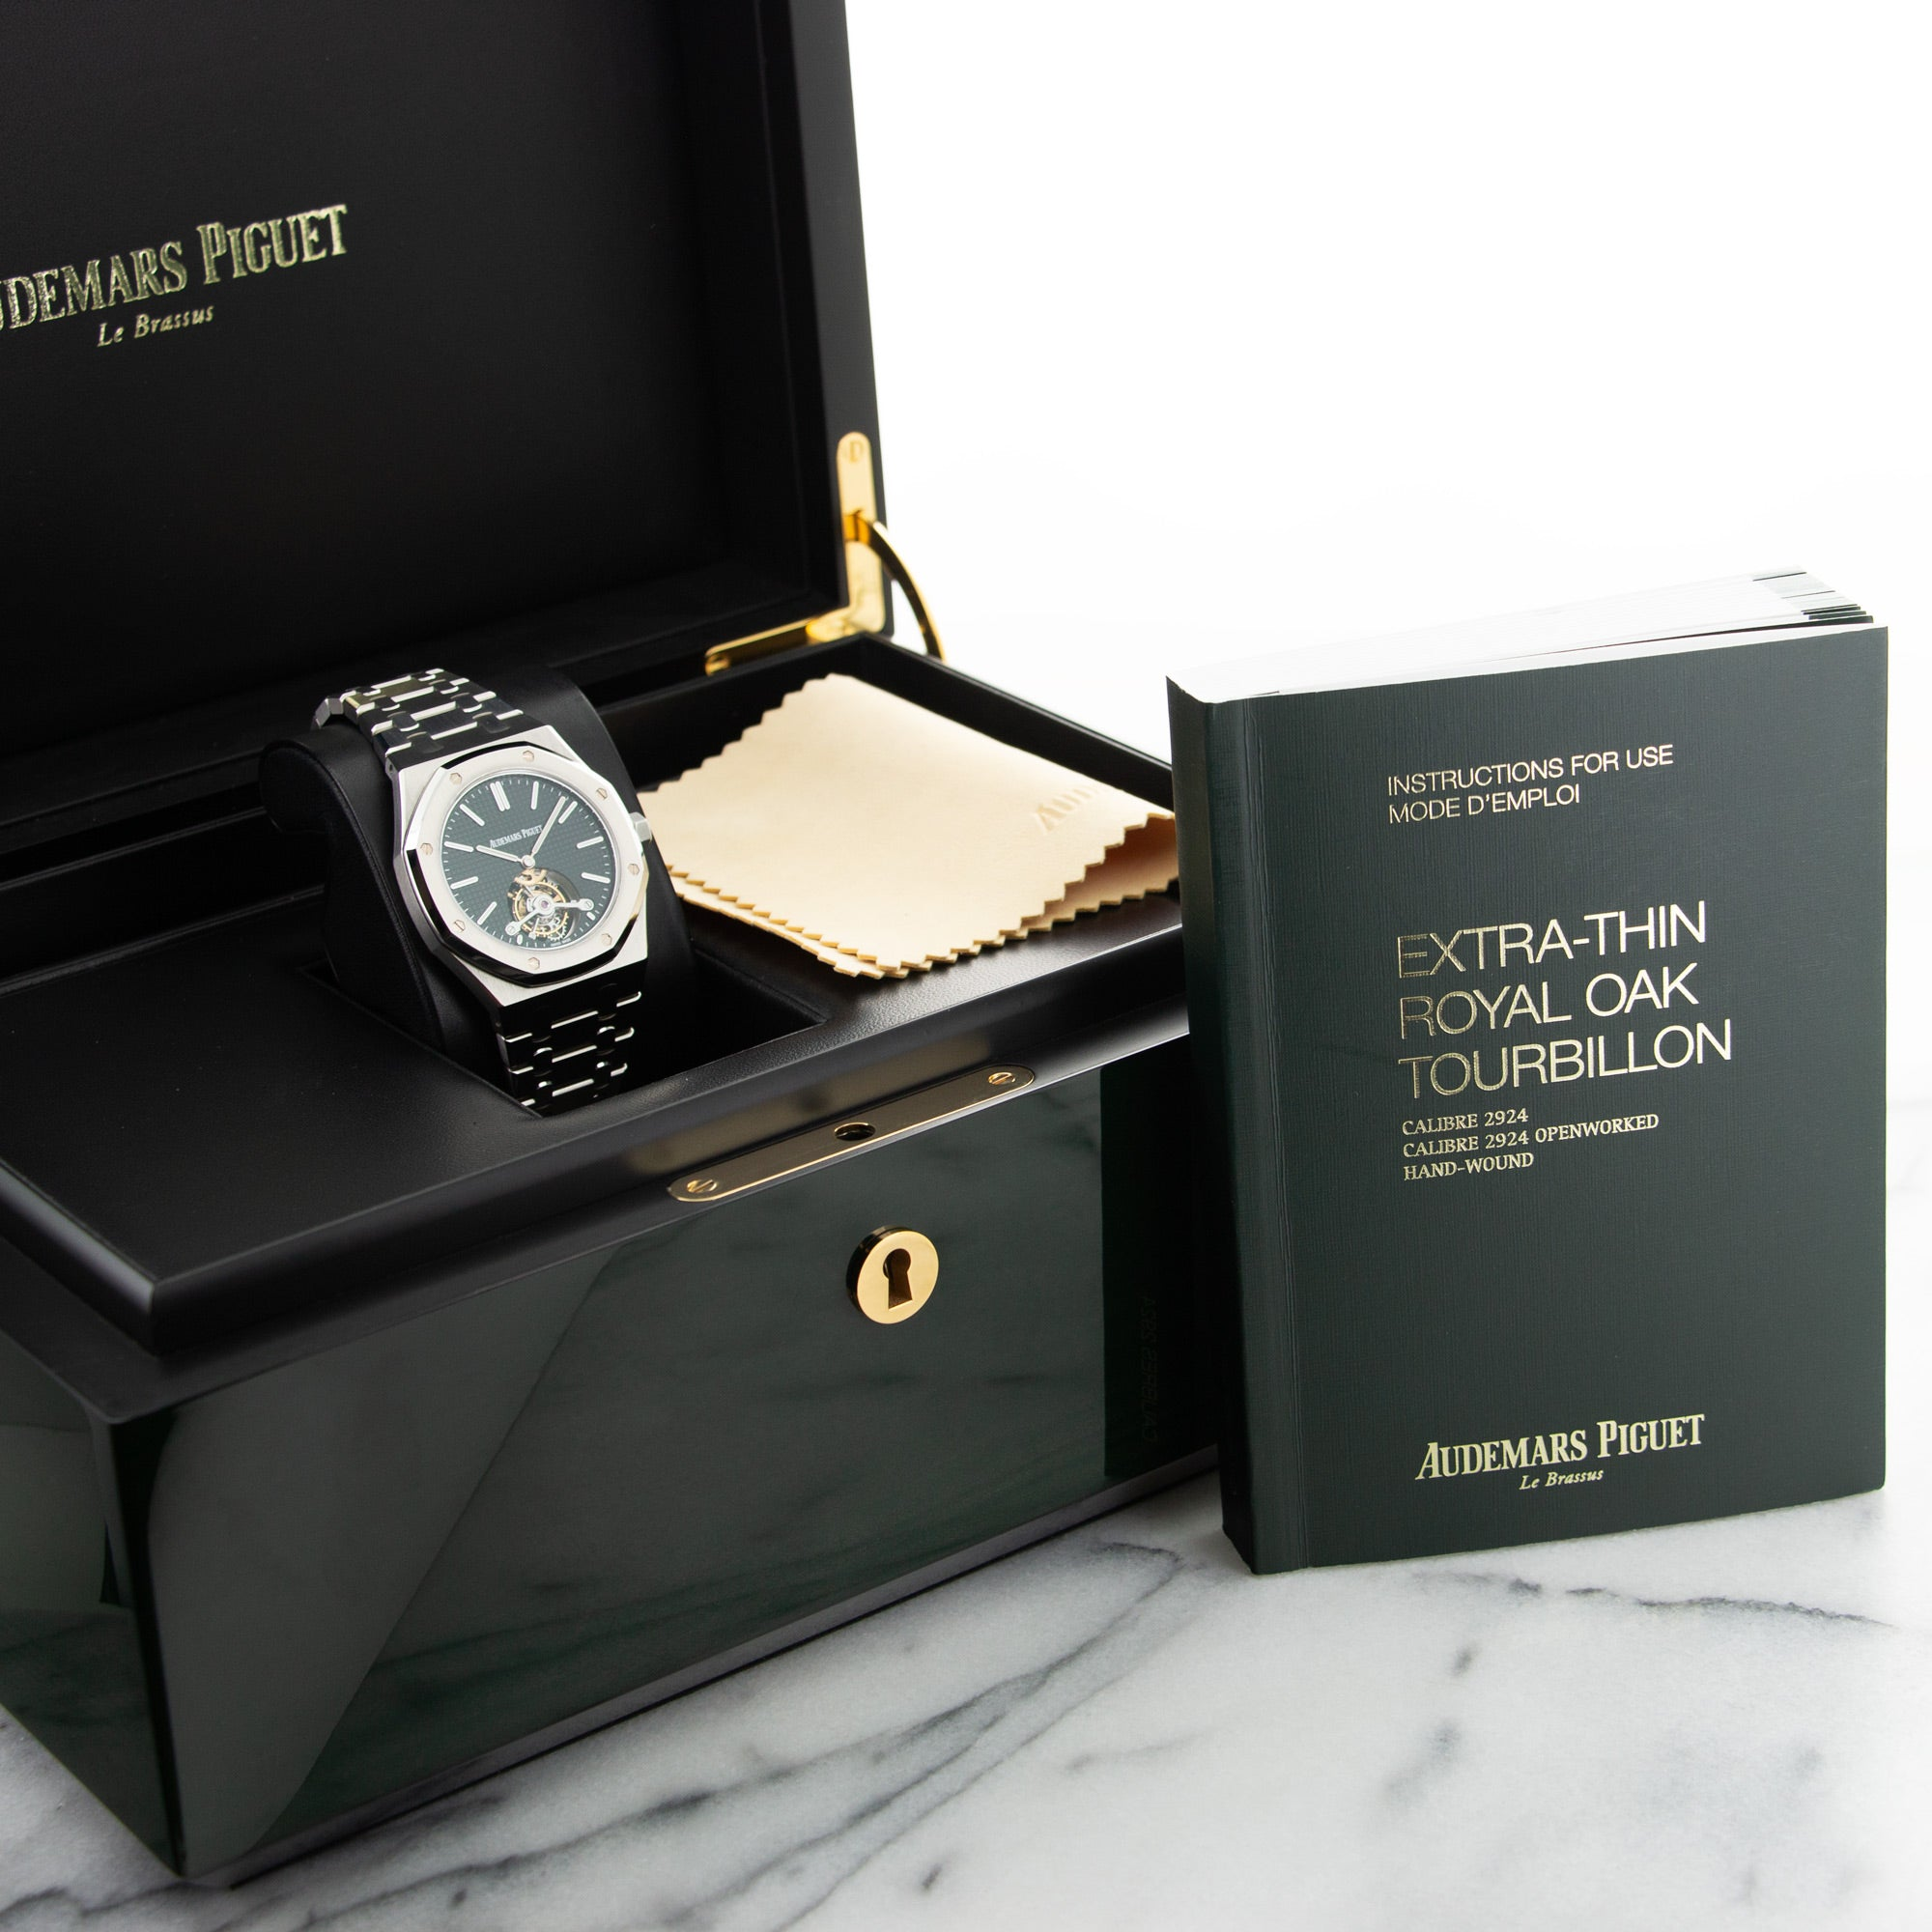 Audemars Piguet Royal Oak 26512ST.OO.1220ST Steel  Mint Gents Steel Black 41mm Automatic Recent Stainless Steel Original Box and Archival Extract Paper